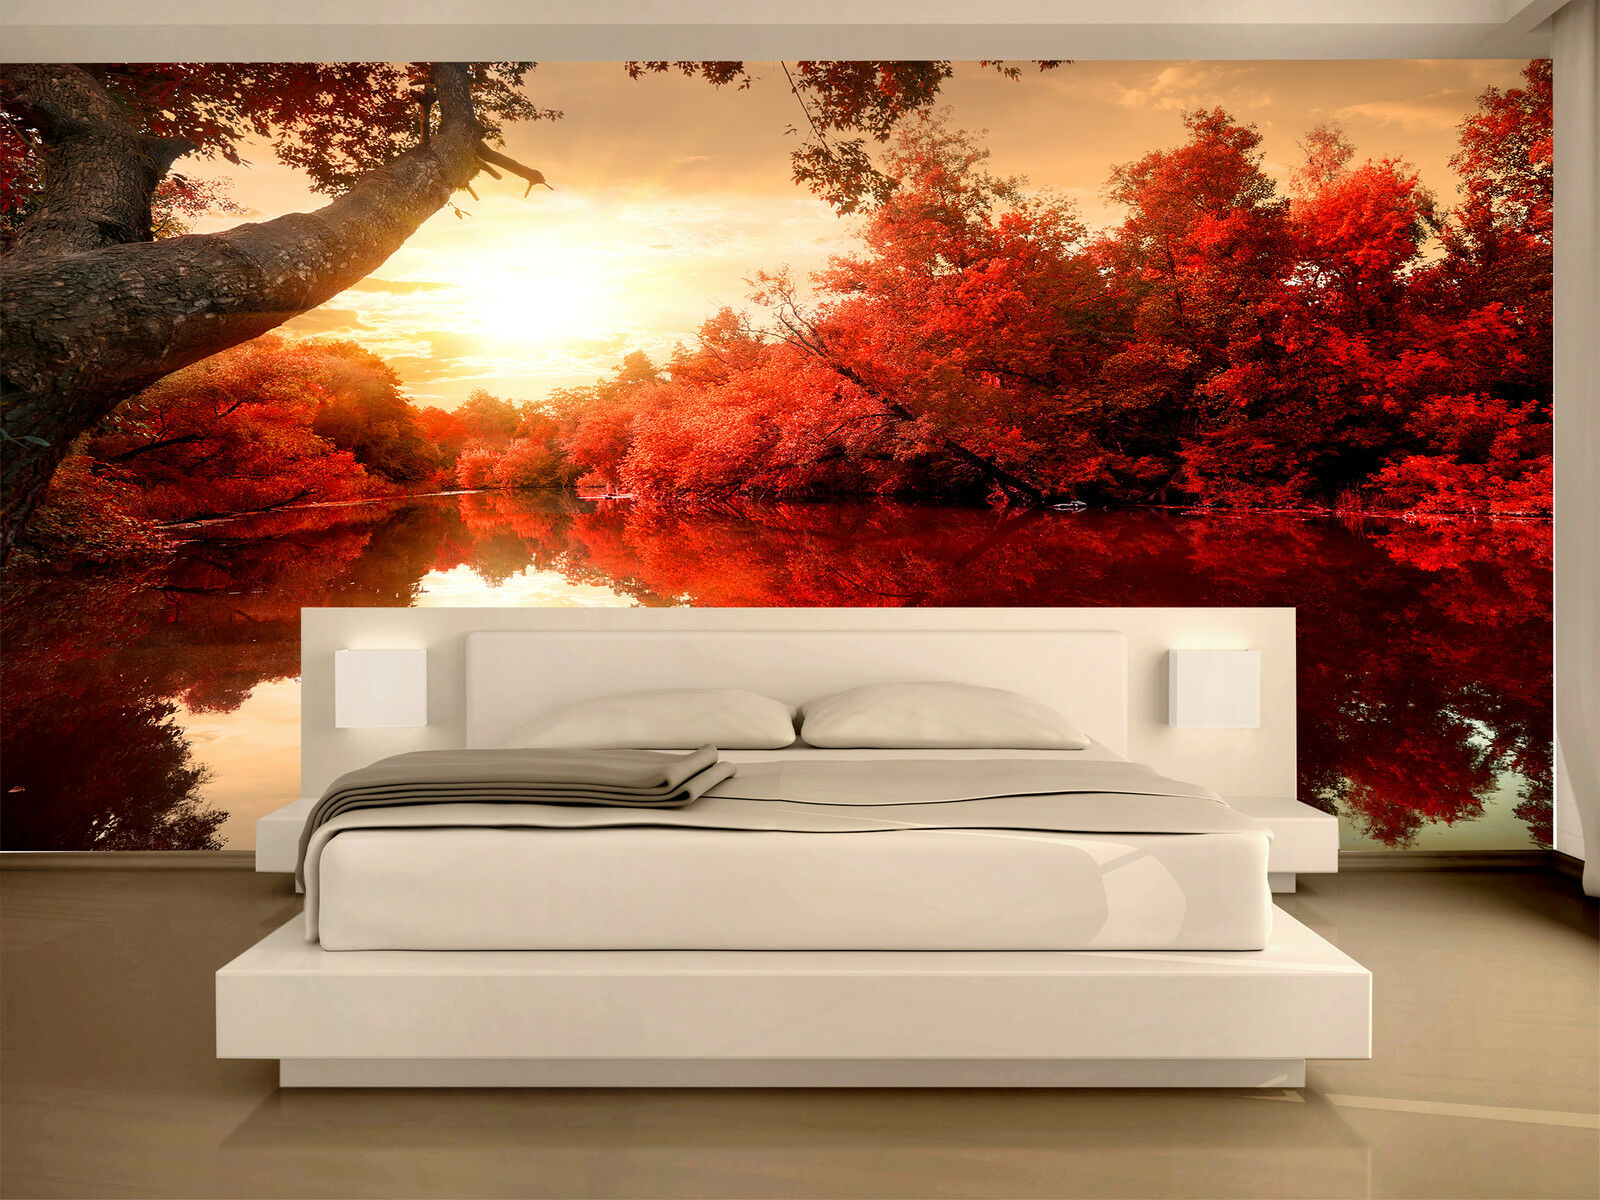 red autumn wall mural photo wallpaper giant decor paper poster red autumn wall mural photo wallpaper giant decor paper poster free paste